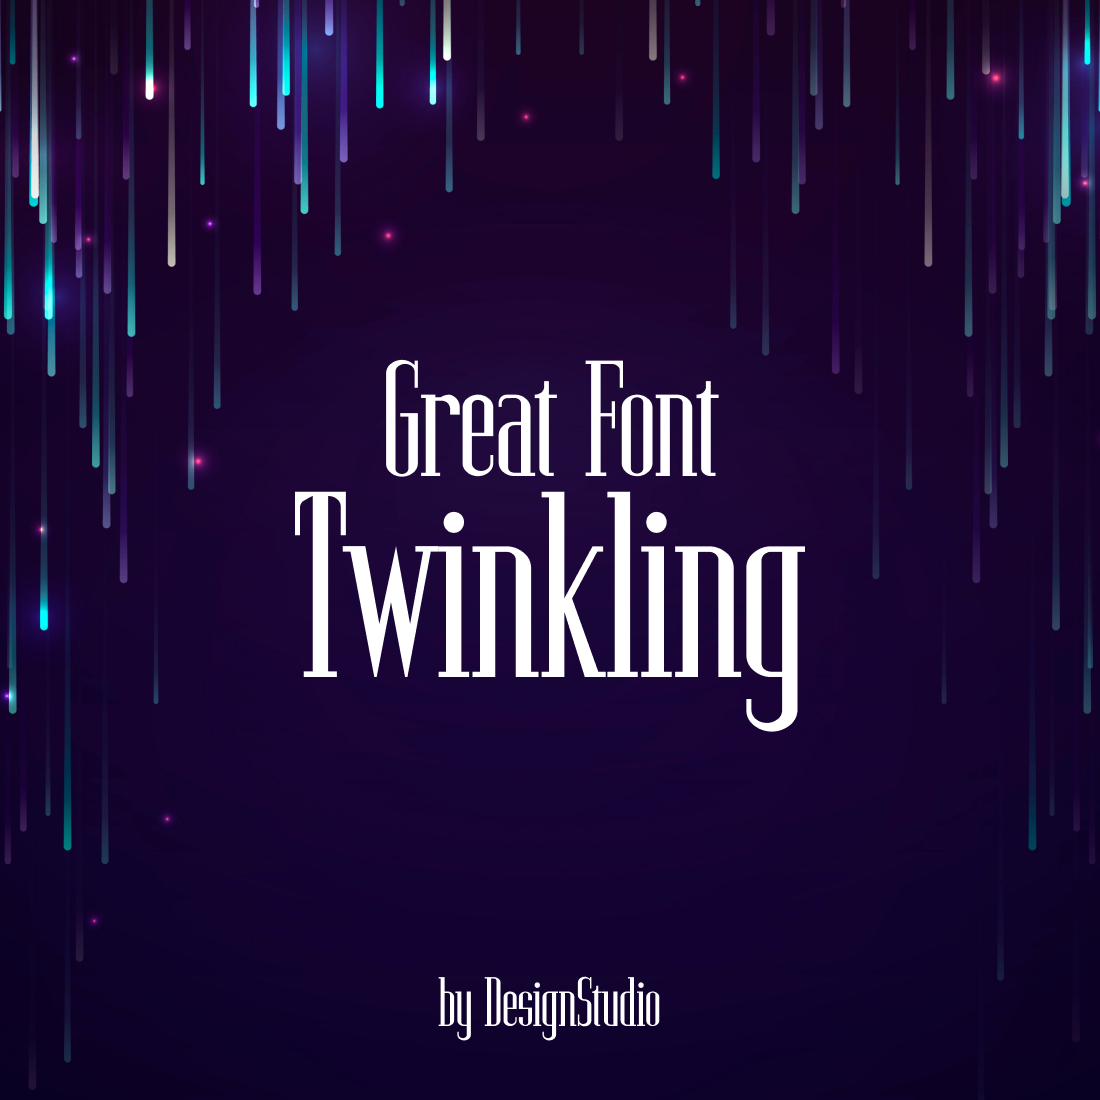 Twinkling Monospaced Serif Font cover image.